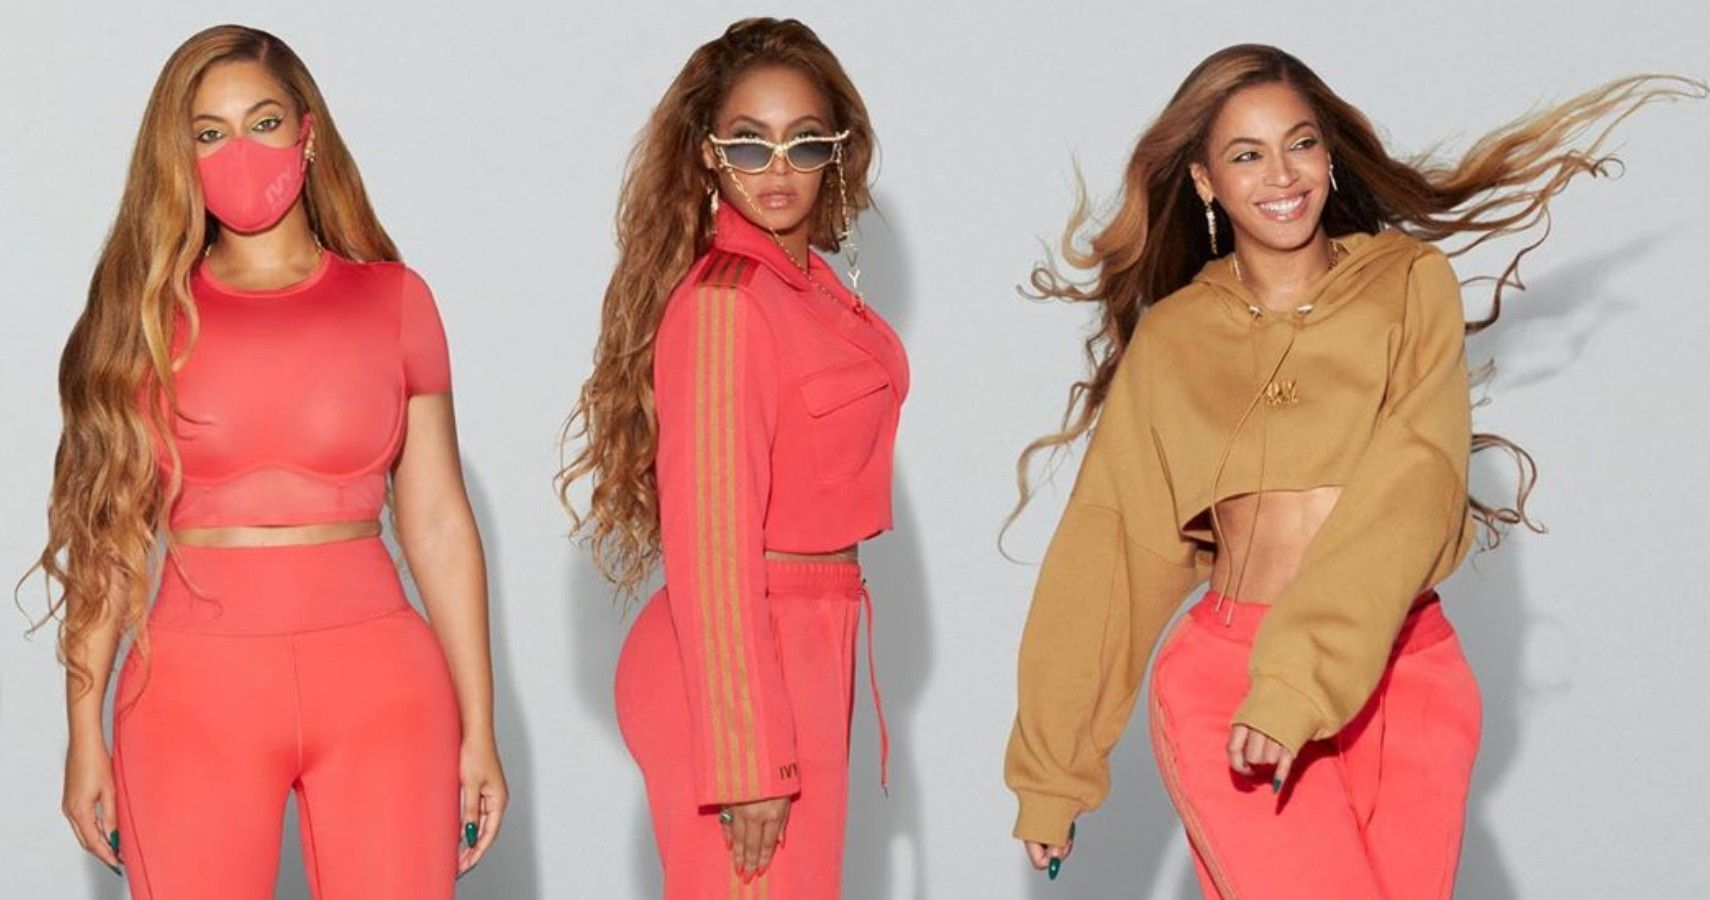 How Many Kids Does Beyonce Have? | Moms.com